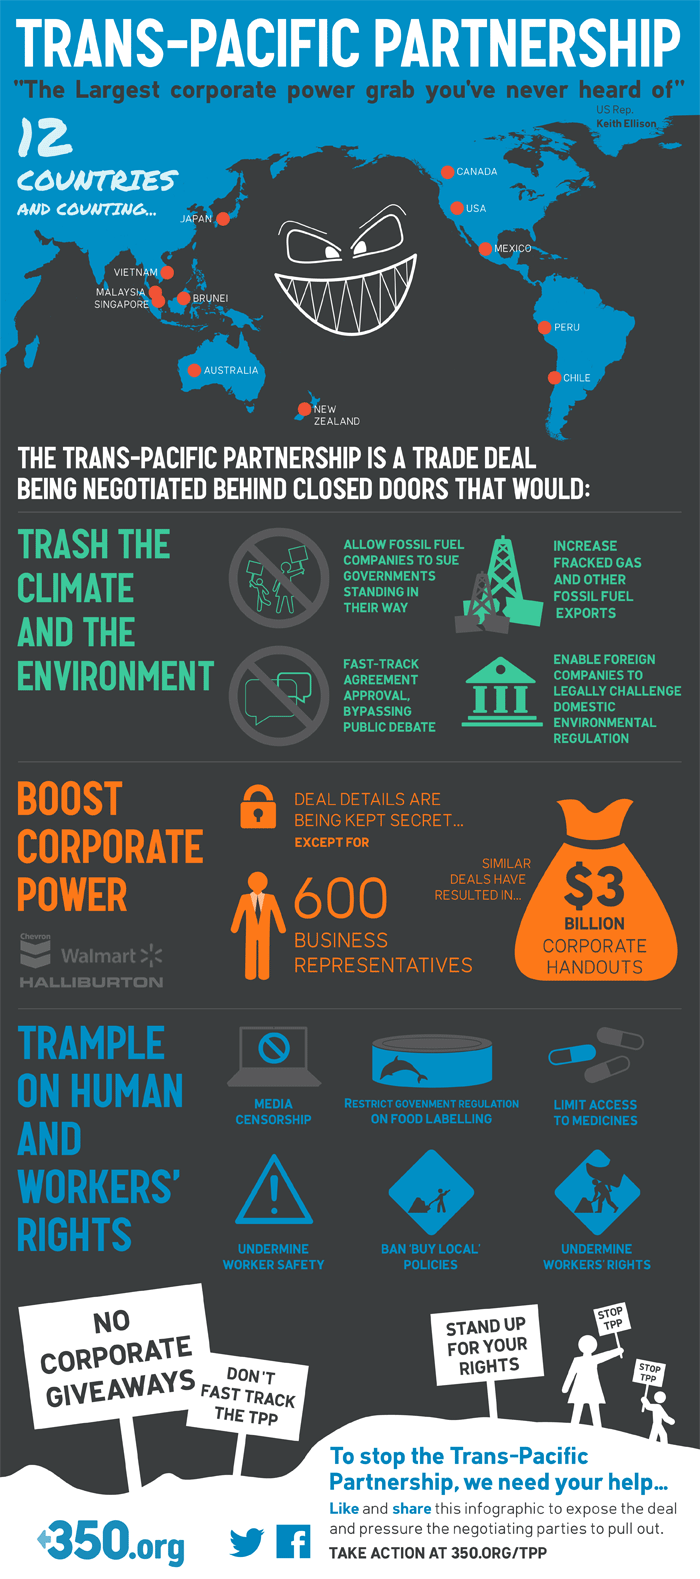 Say No To Corporate Power Grabs Reject The Trans Pacific